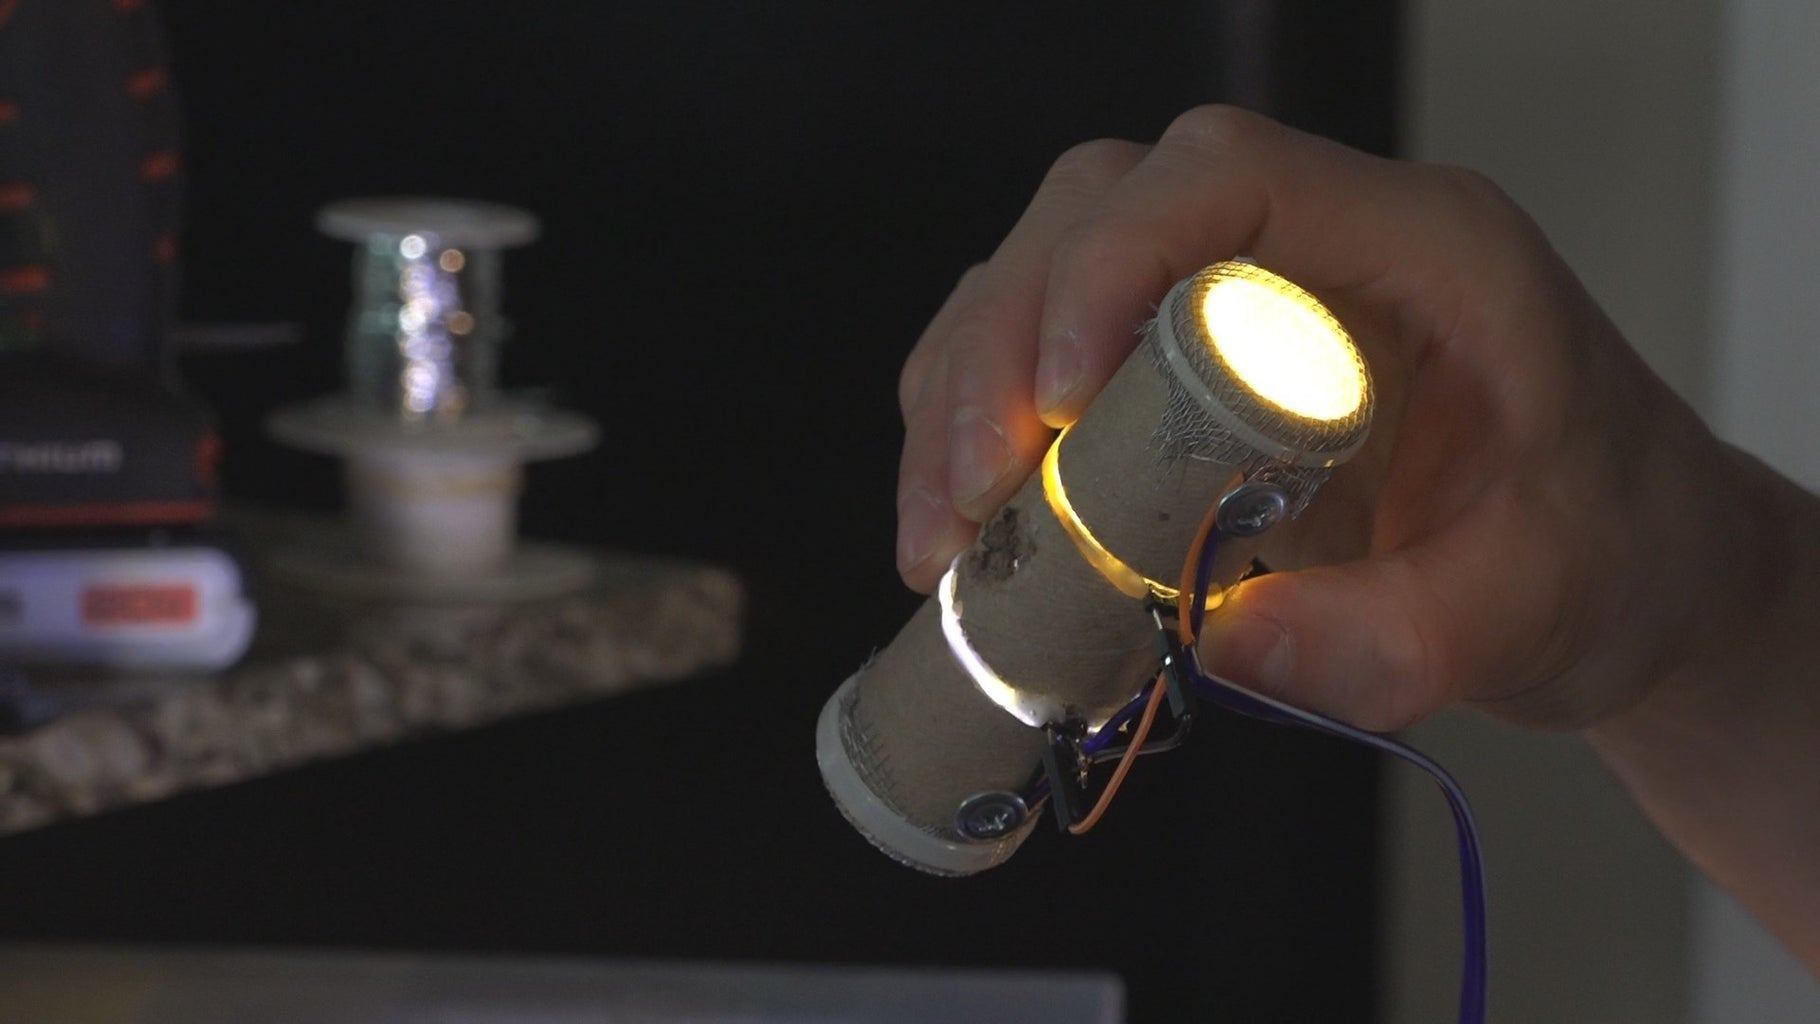 Creating the Light Tubes